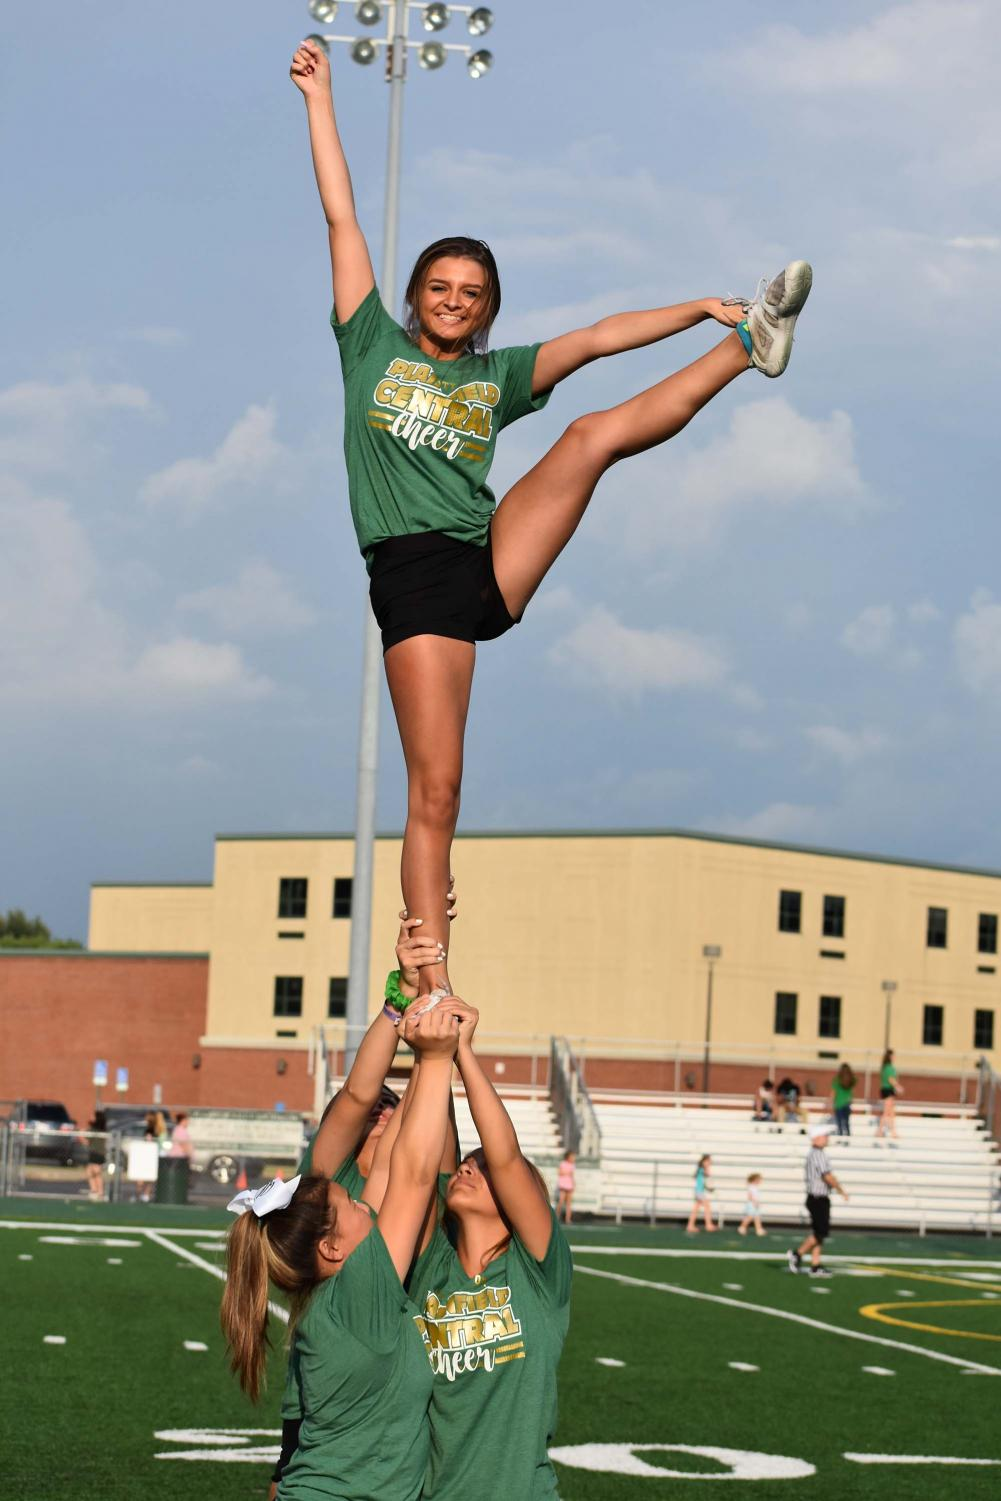 Junior+Katie+Carr+holds+a+heel+stretch+while+in+a+full+extension+stunt+during+the+cheerleading+routine+at+Green+and+White+night.